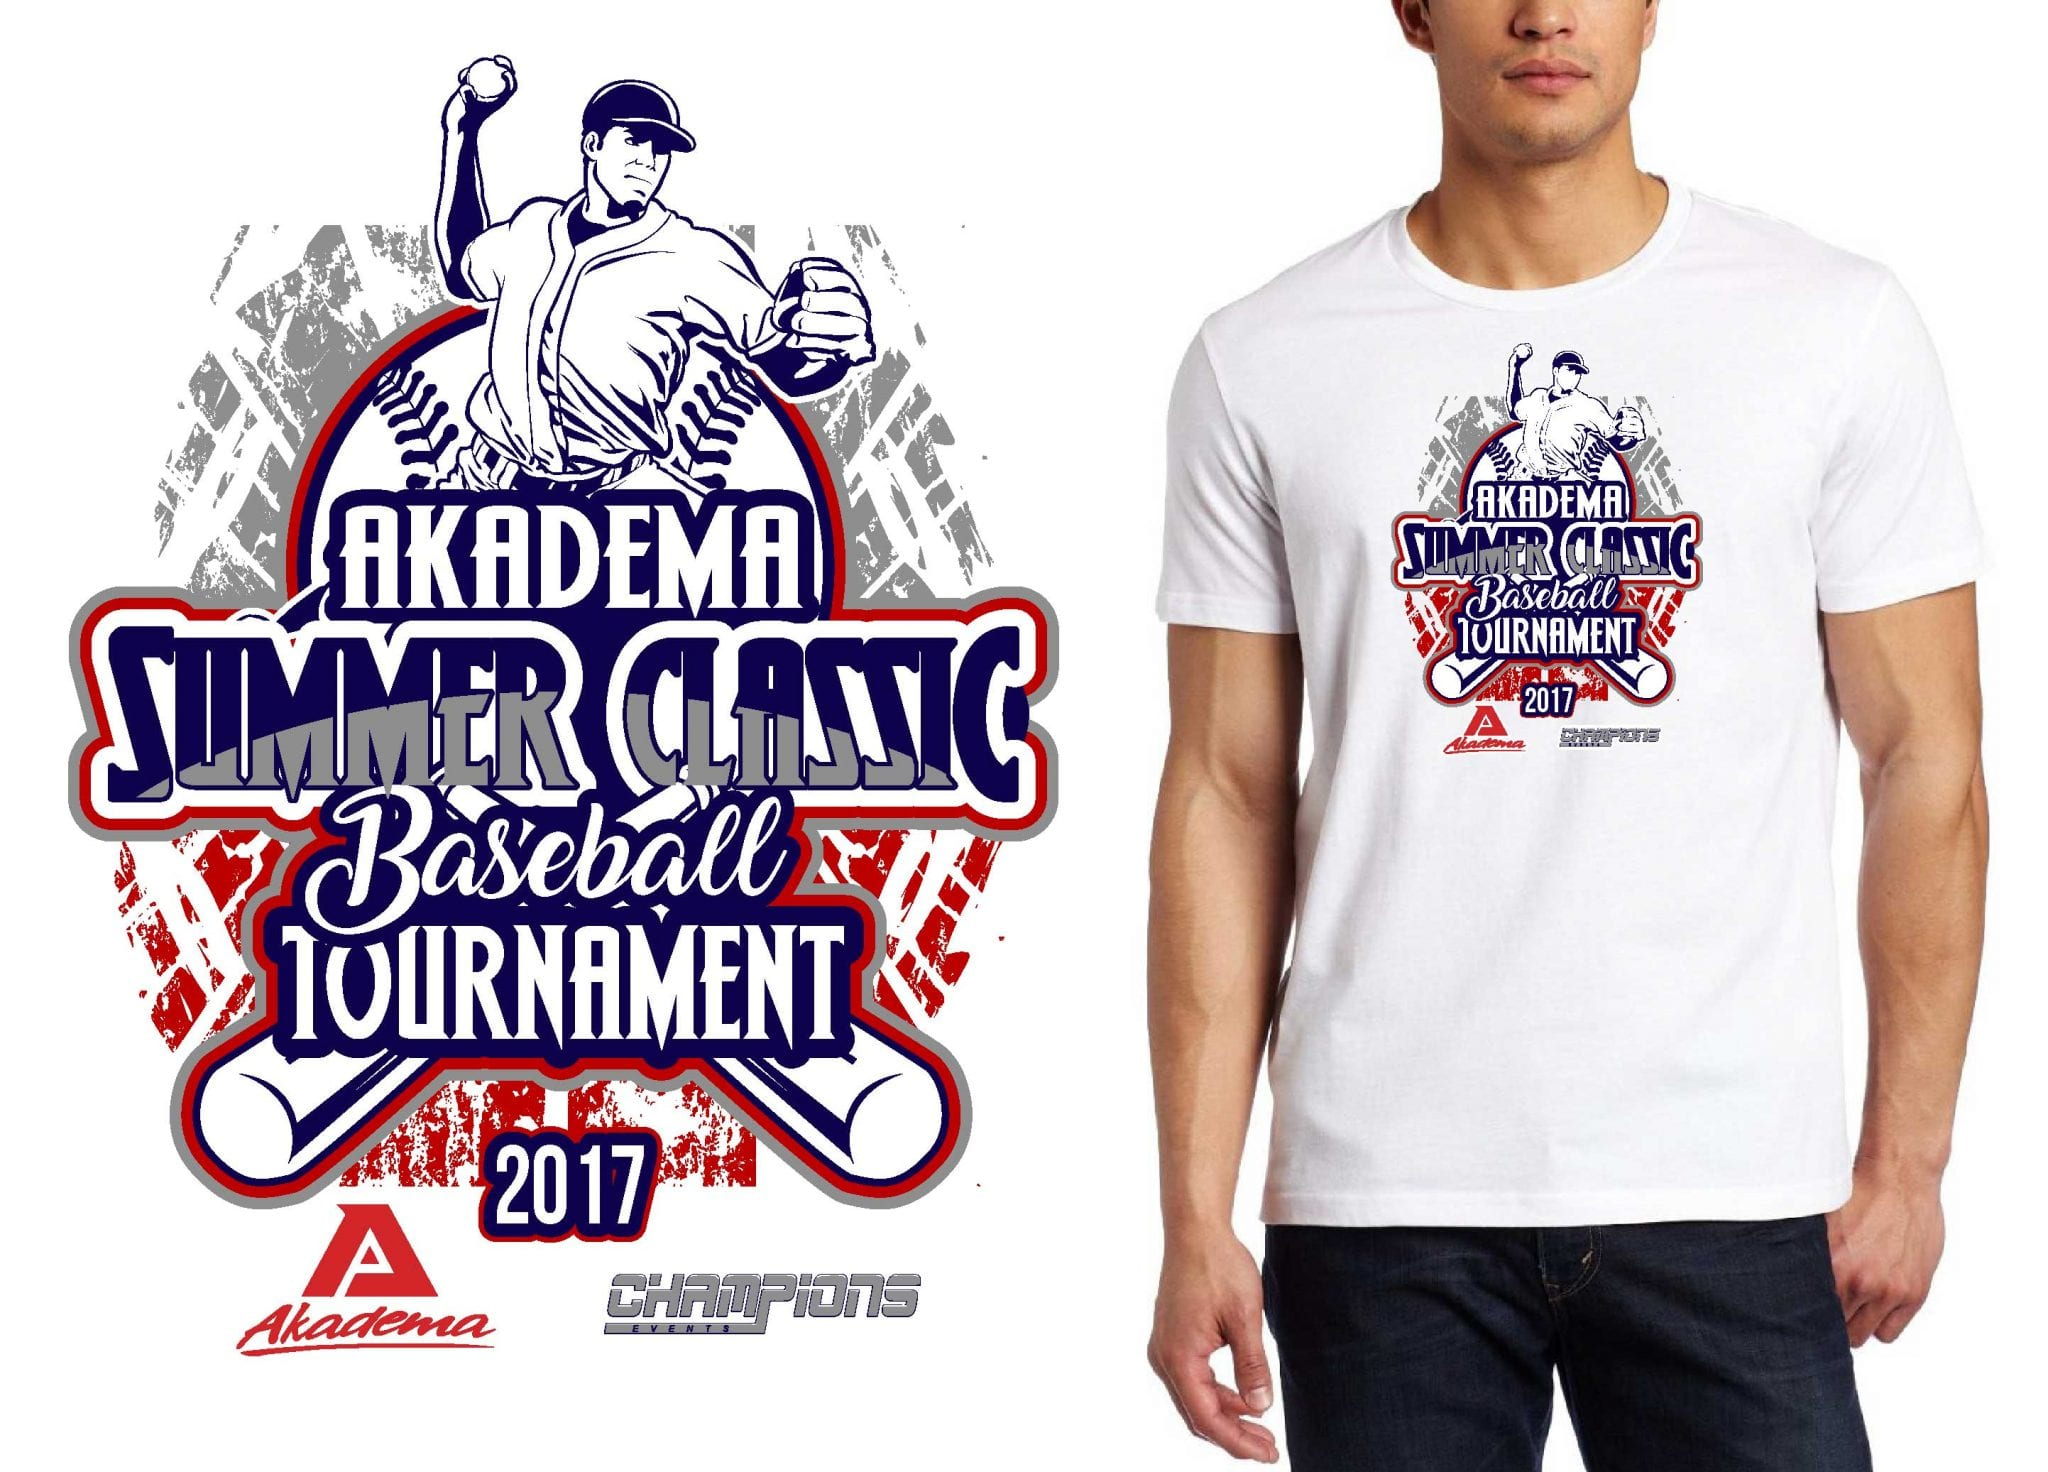 BASEBALL TSHIRT LOGO DESIGN Akadema-Summer-Classic-Baseball-Tournament BY UrArtStudio